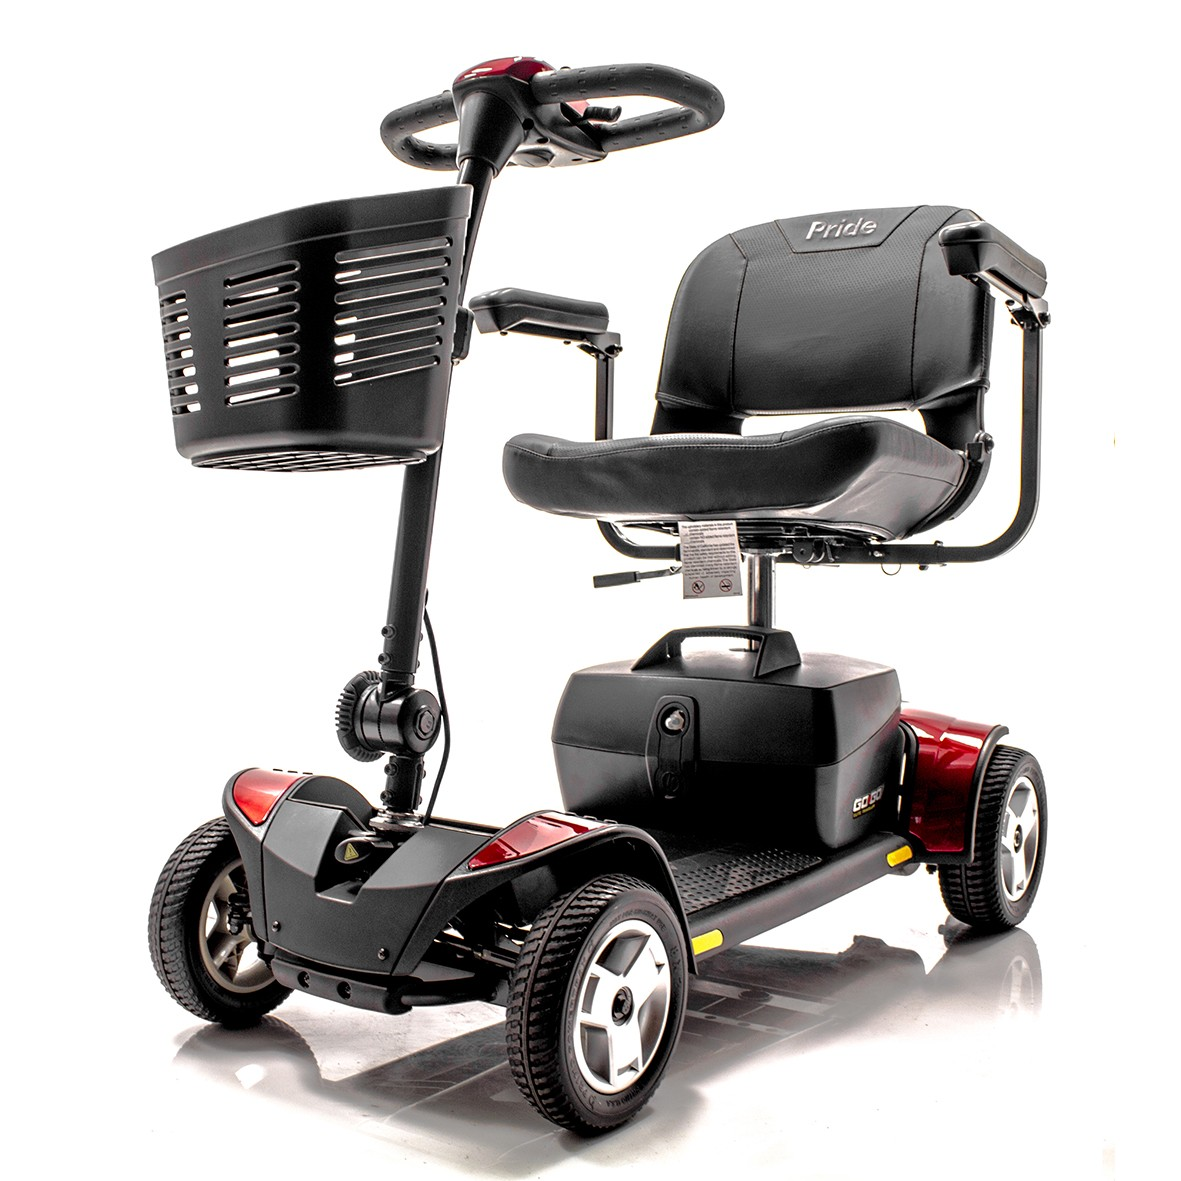 electric wheel chair rental best chairs for pc gaming reddit anaheim rent mobility scooter wheelchair